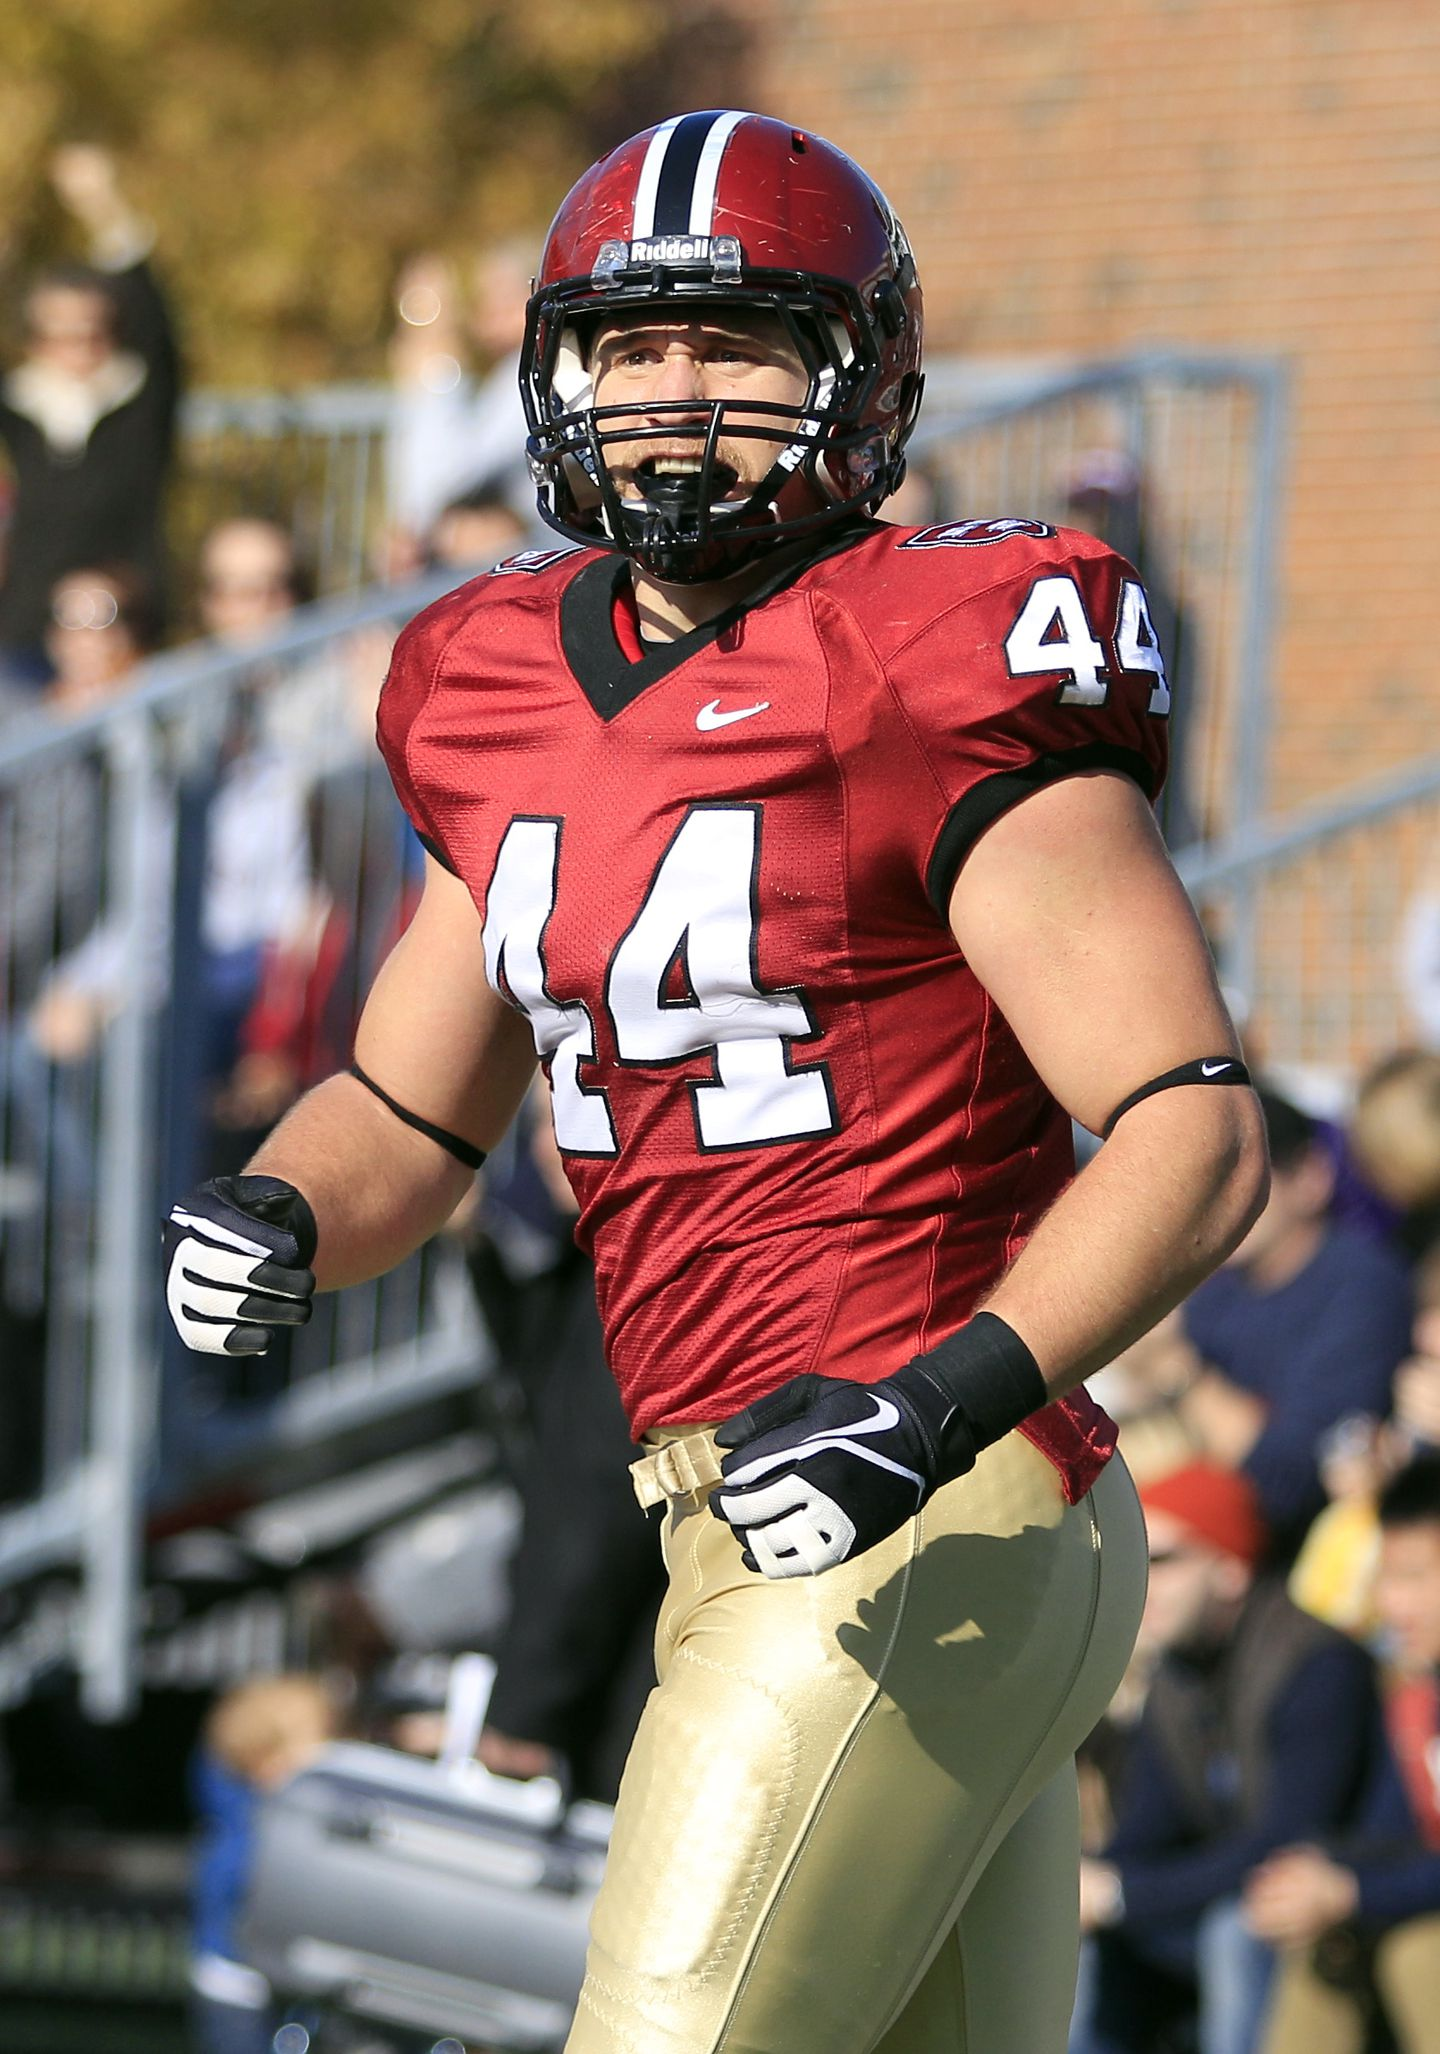 Harvard's Kyle Juszczyk is bound for Baltimore - The Boston Globe